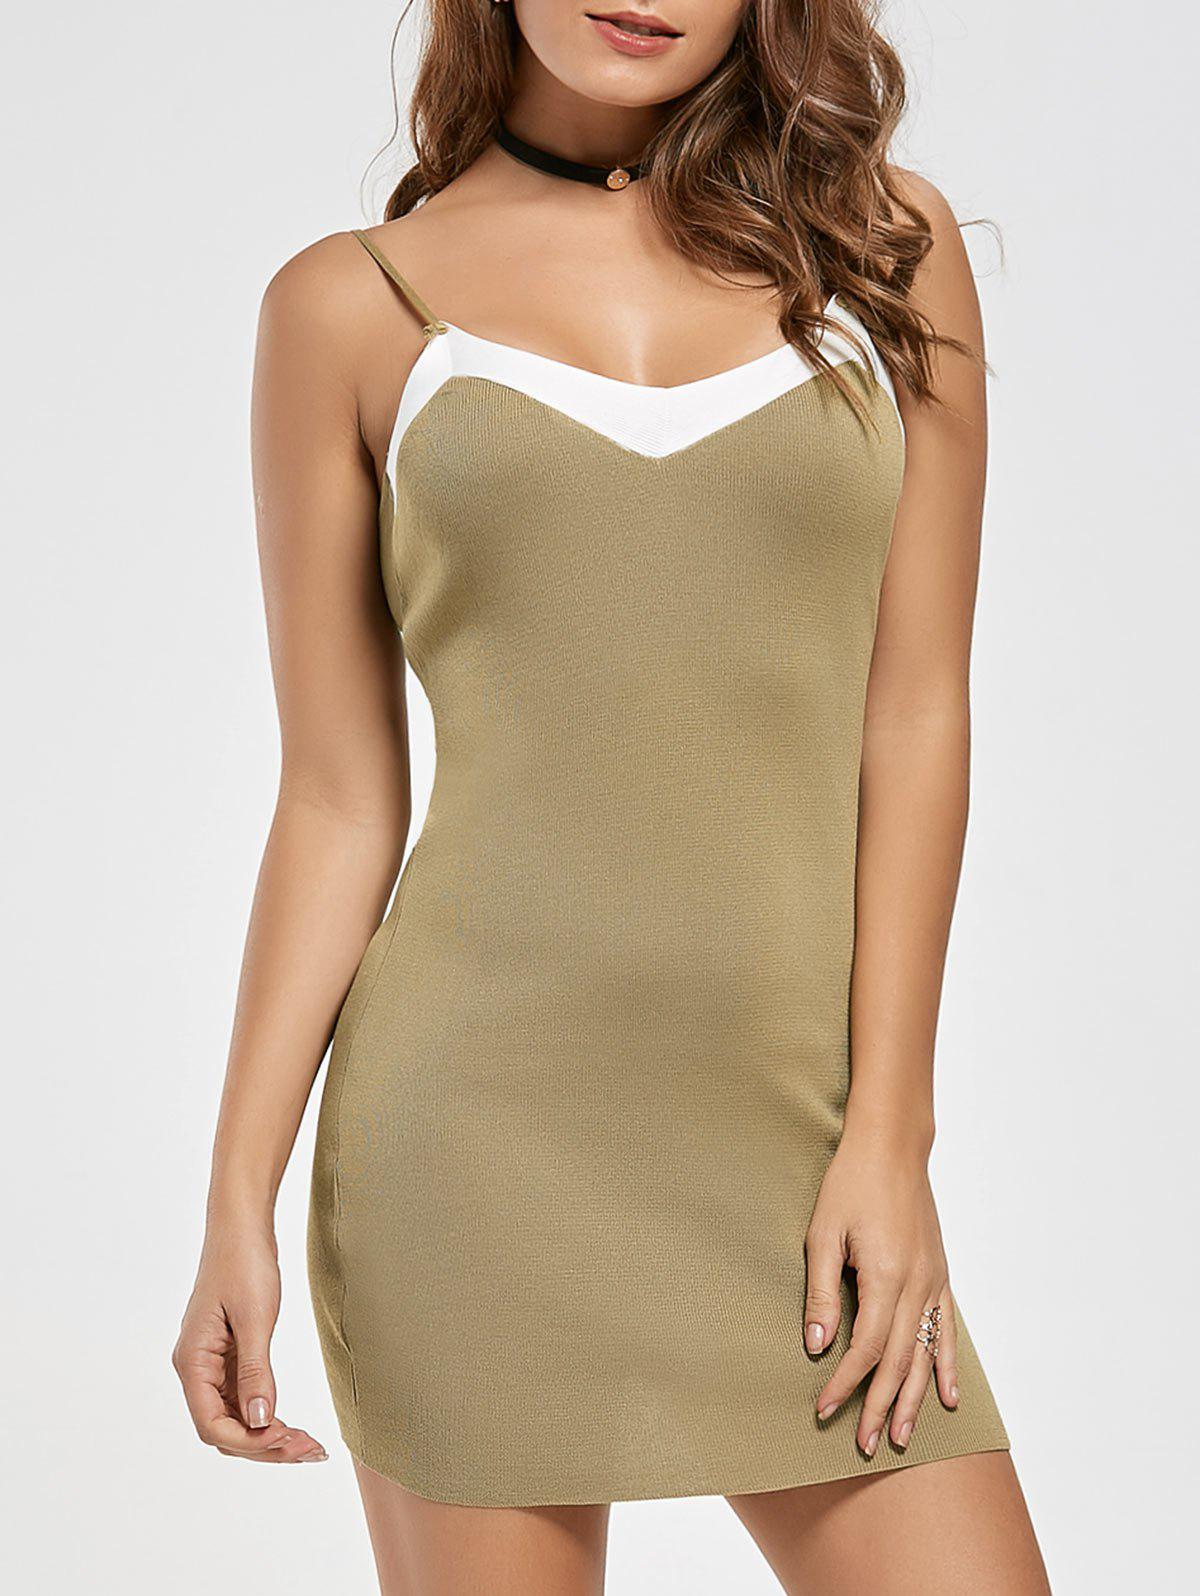 Bodycon Two Tone Knit Slip Dress - KHAKI ONE SIZE